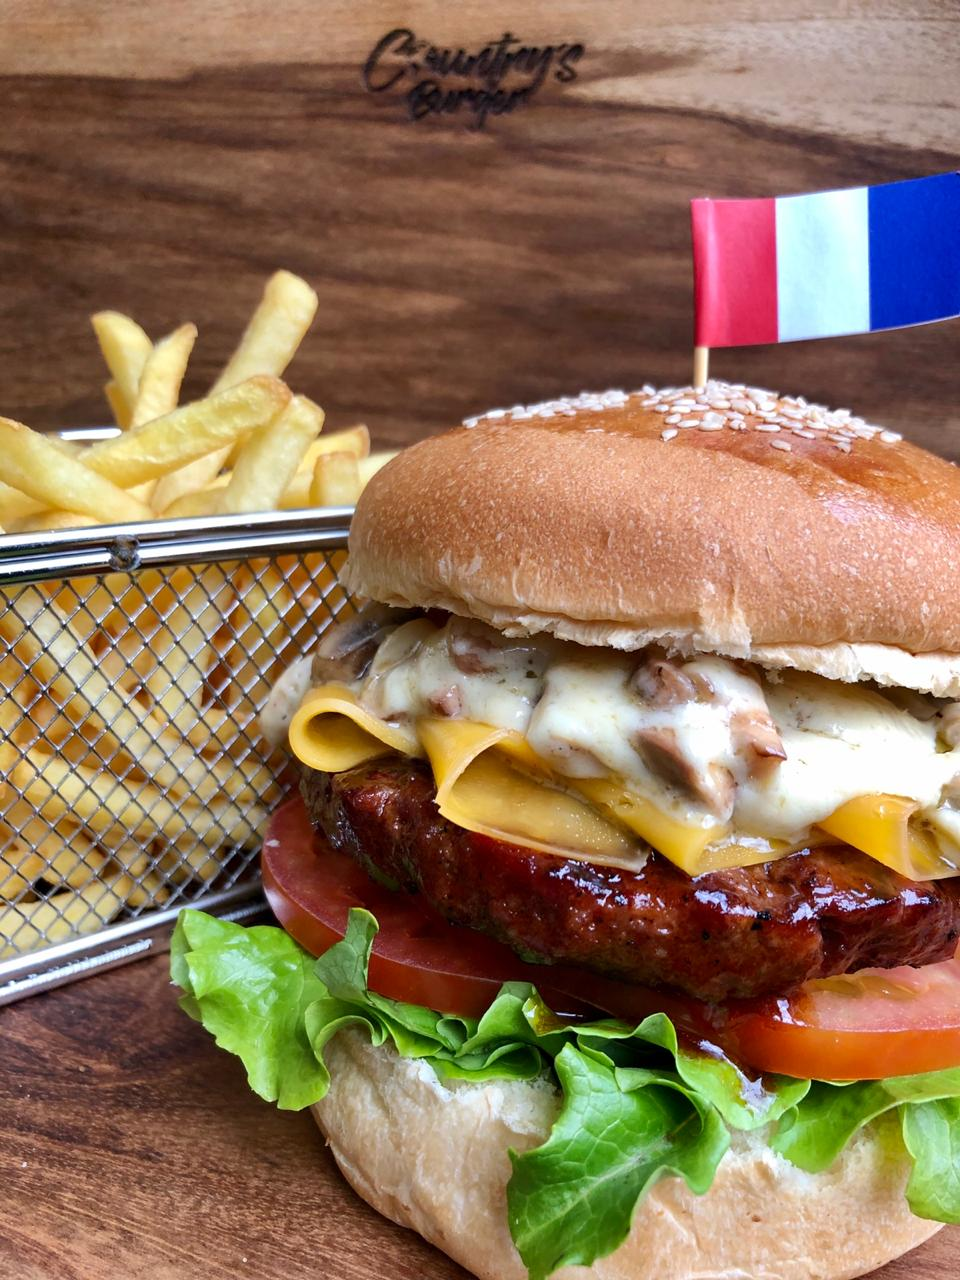 Countrys Burger